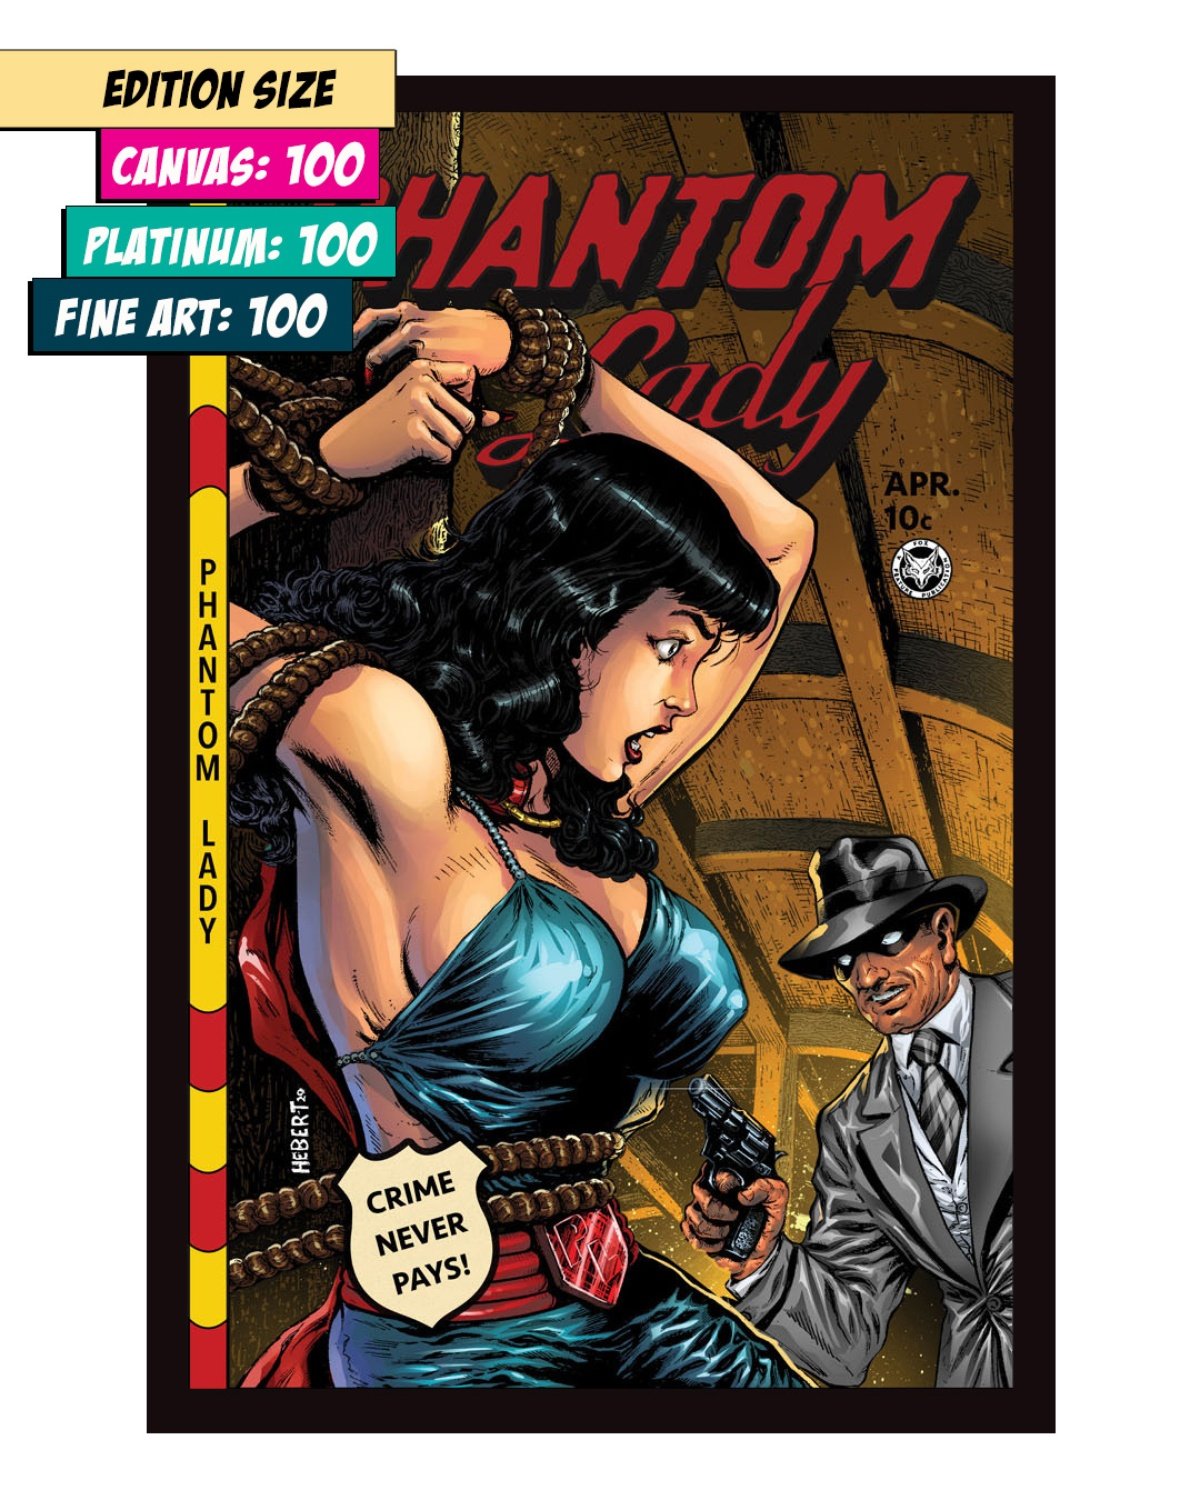 PHANTOM LADY 23: ALL TIED UP